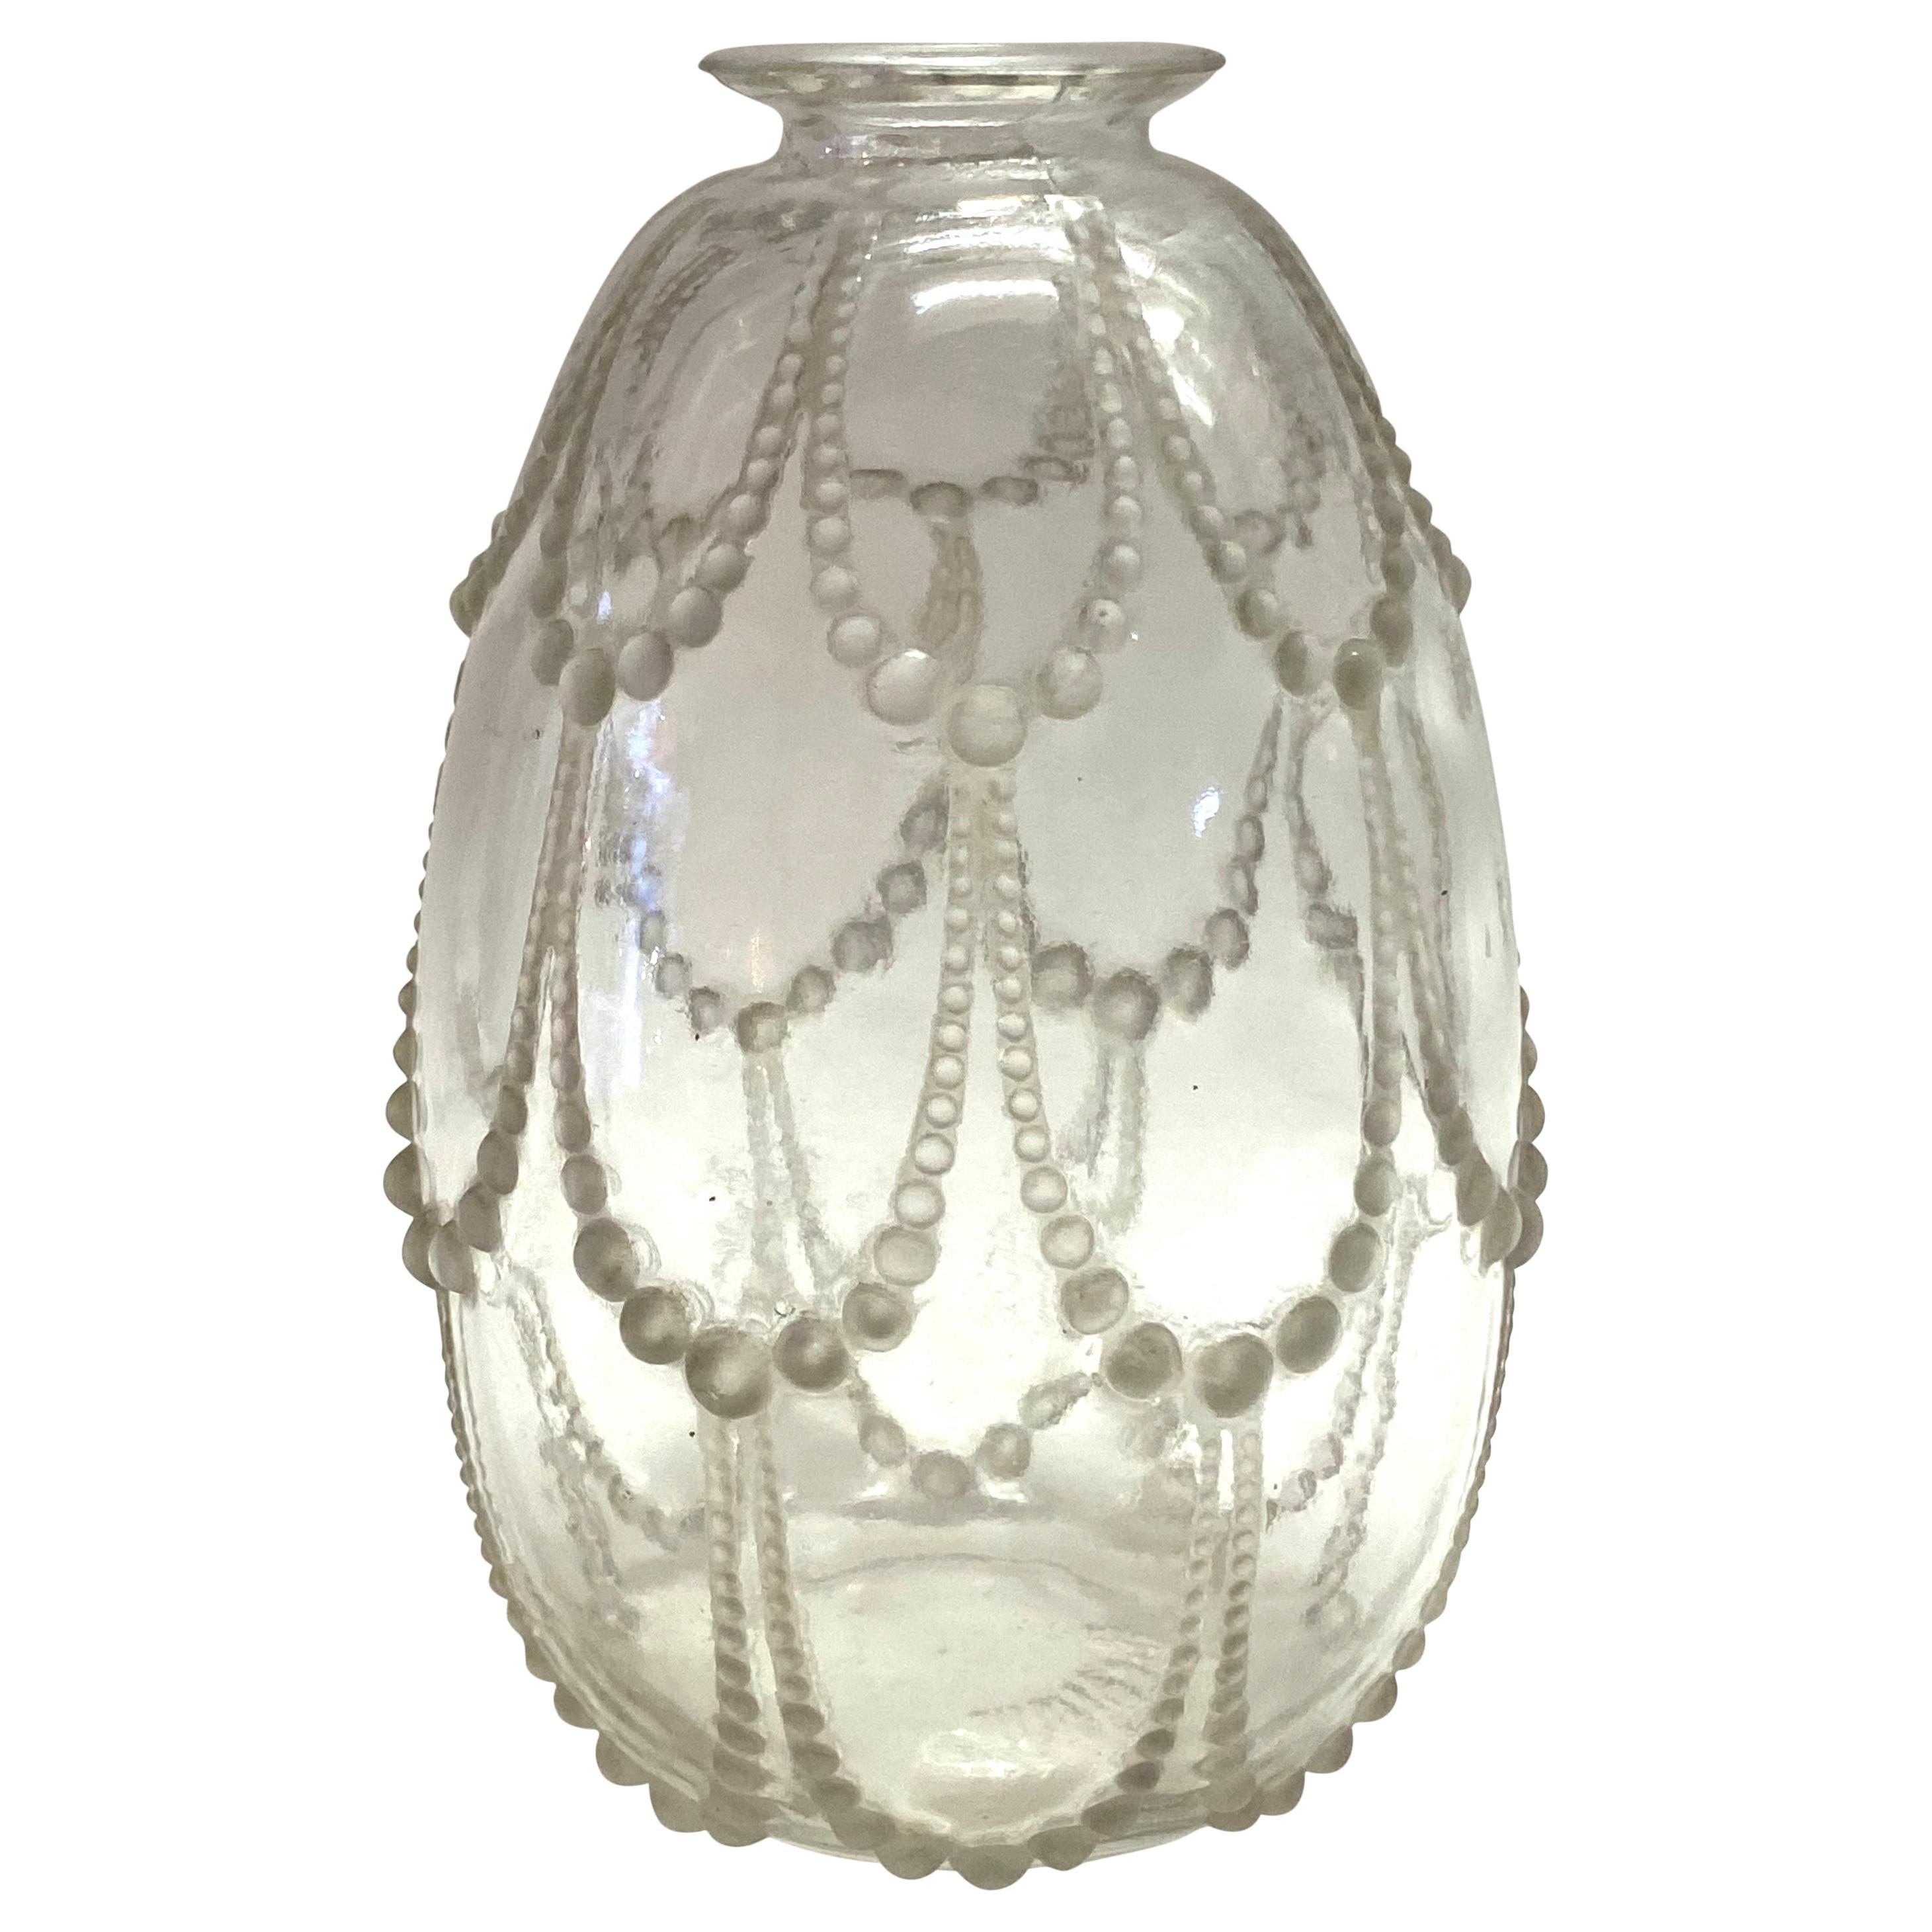 1925 René Lalique Perles Vase in Clear and Frosted Glass, Pearls